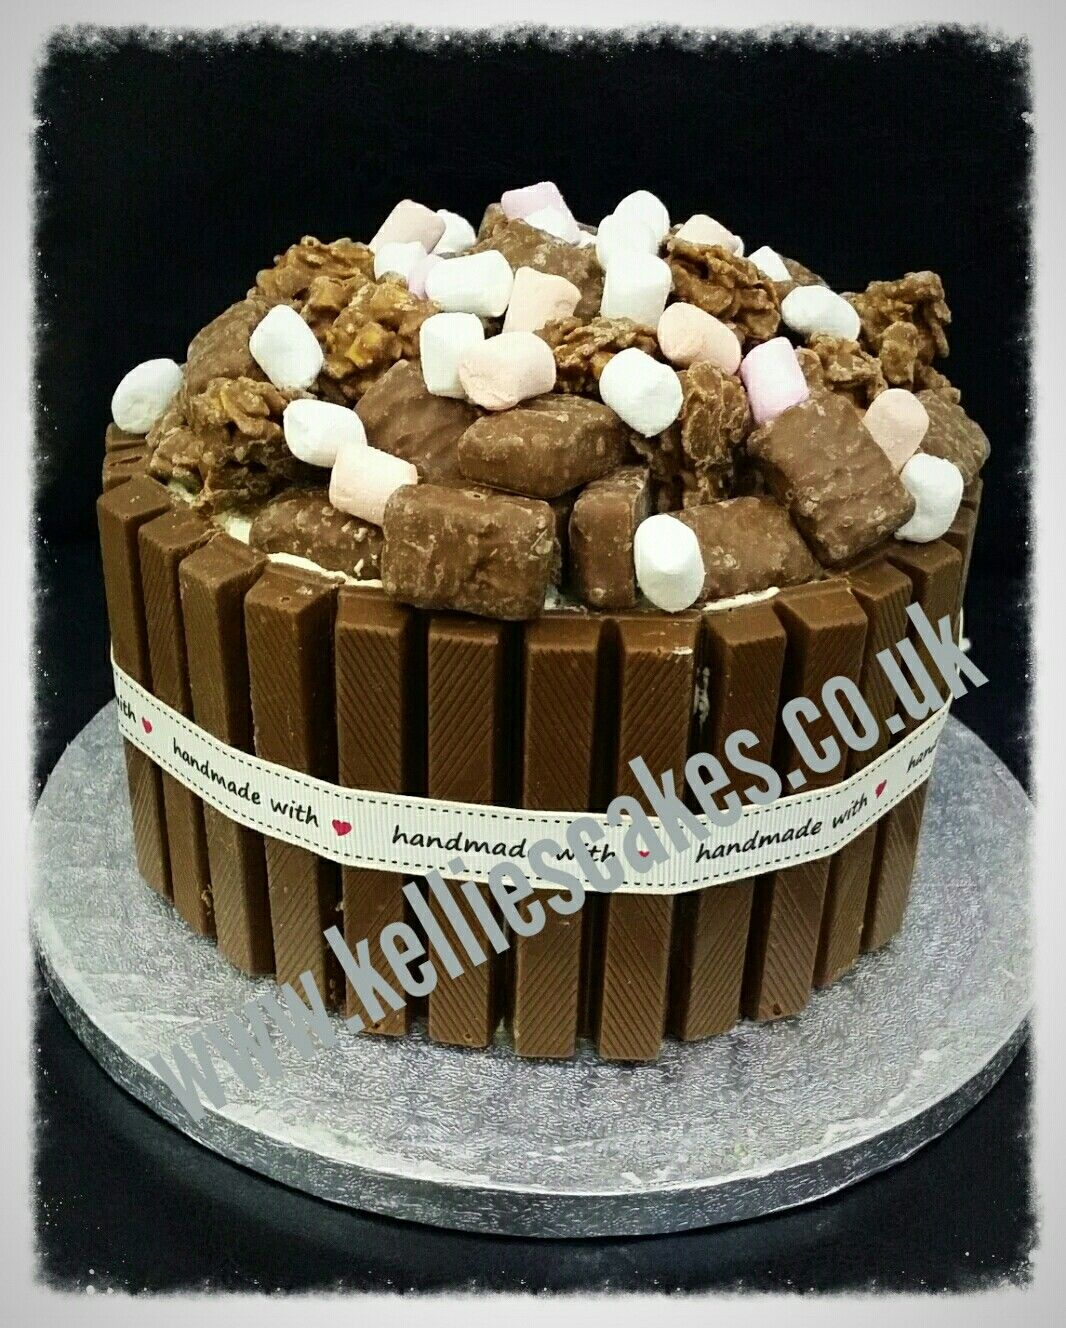 Chocoholics delight - chocolate cake topped with different bars and marshmallows